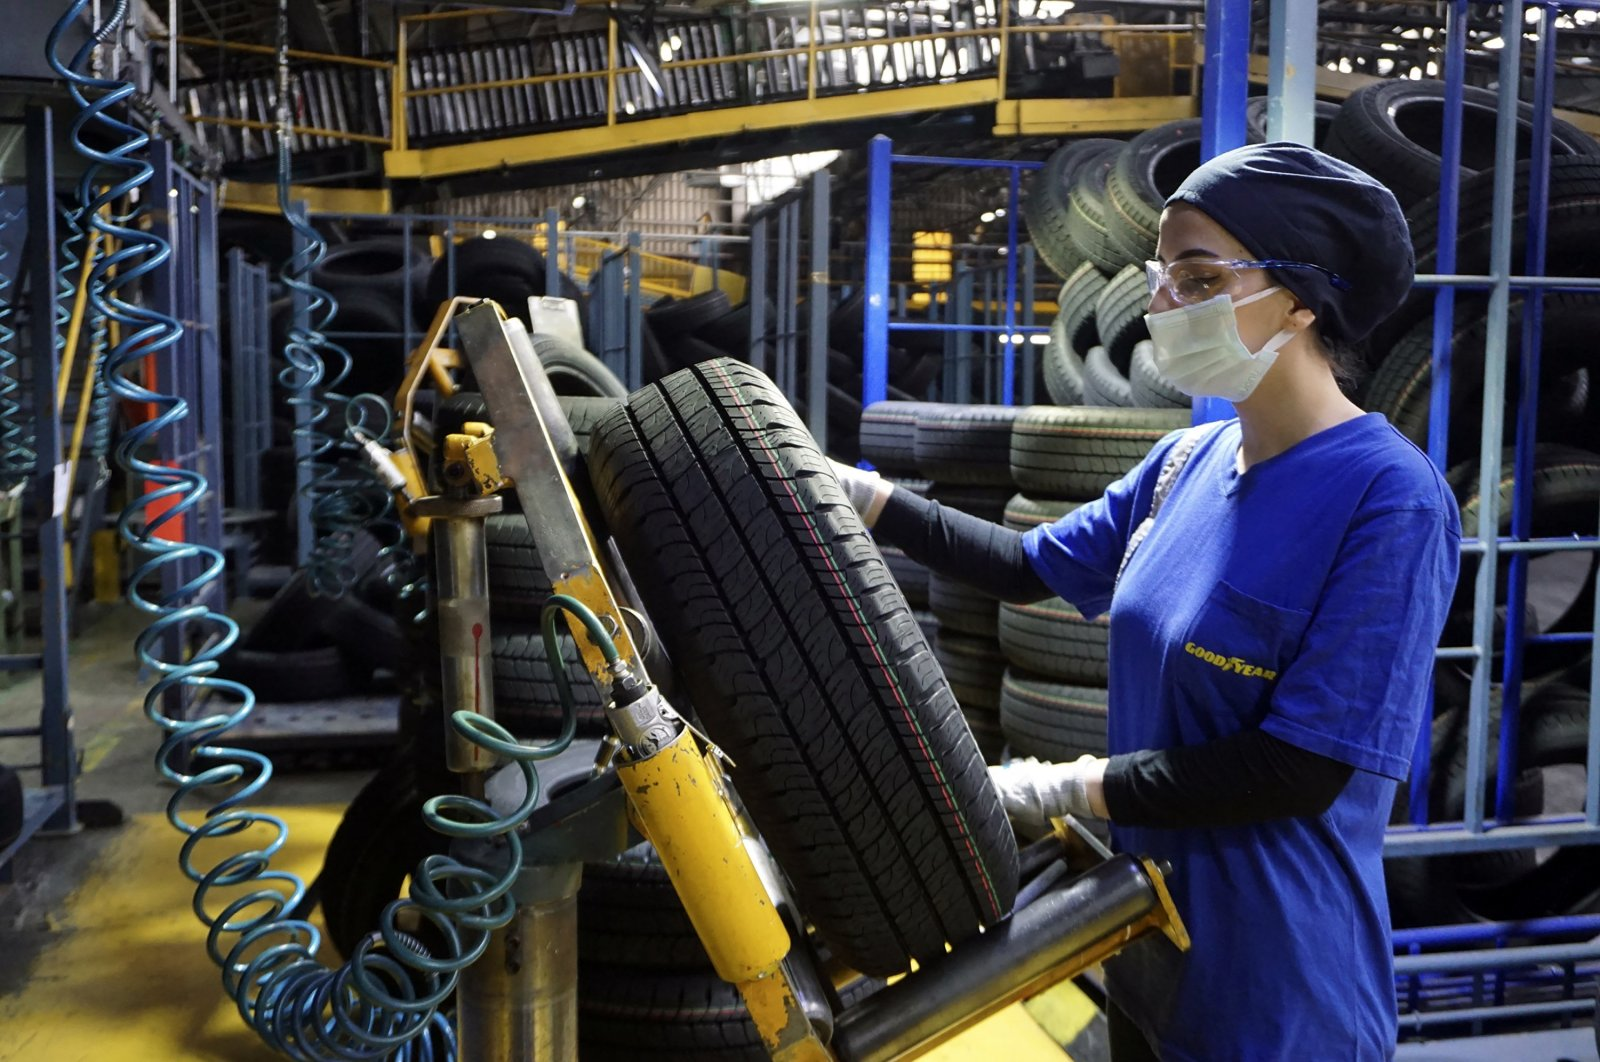 A woman working in the quality control department of the Goodyear factory checks a tire in the plant in Turkey's Sakarya province, June 1, 2021. (Sabah Photo)